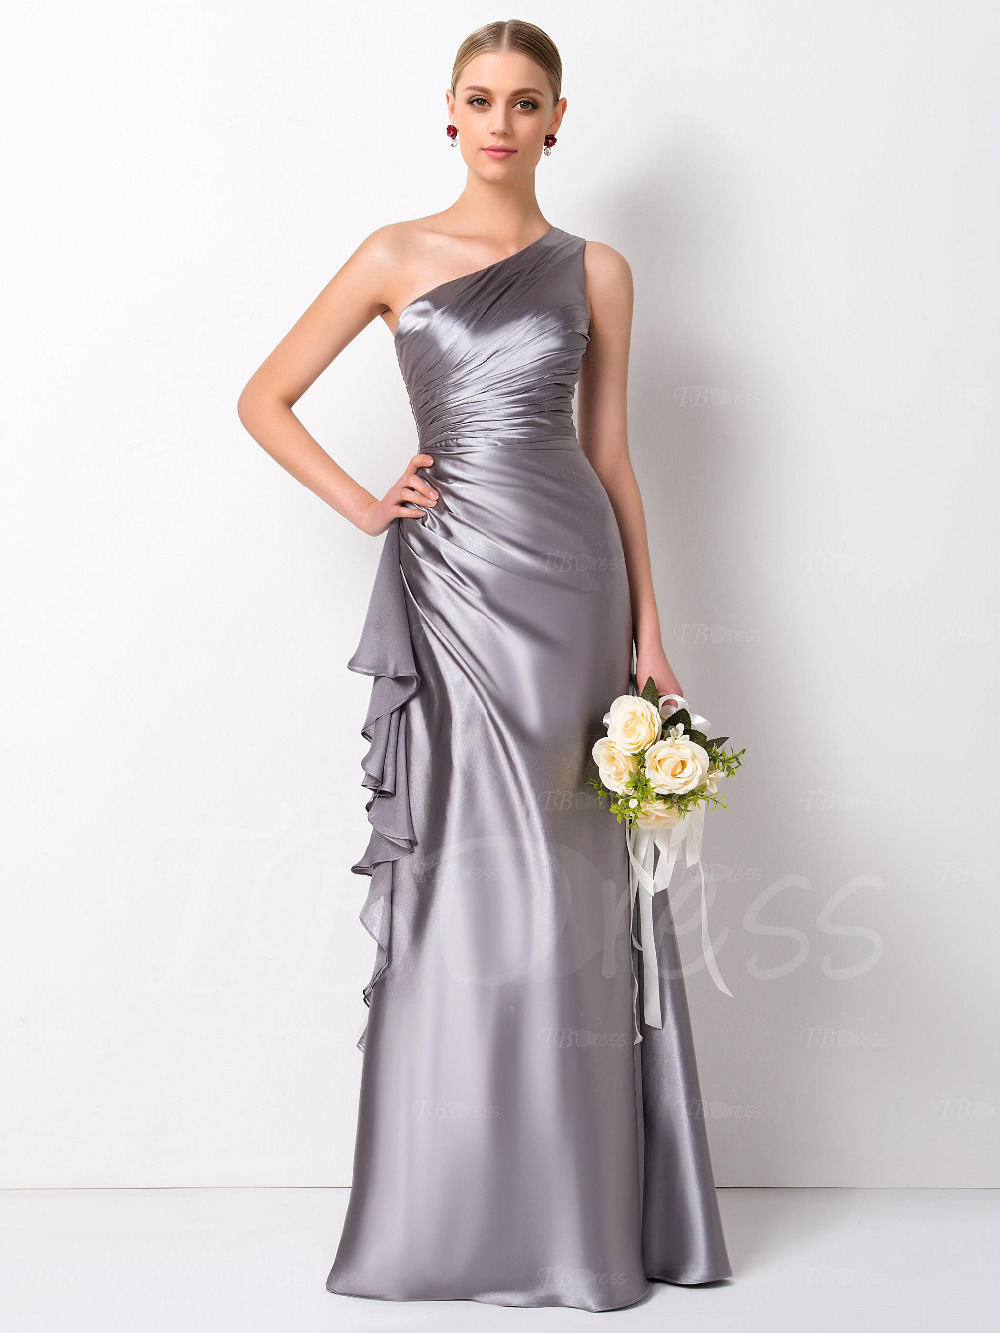 Aliexpress buy charming silver sheathcolumn one shoulder aliexpress buy charming silver sheathcolumn one shoulder long bridesmaid dress 2016 vestido curto lady wedding party gowns vestido longo from ombrellifo Image collections